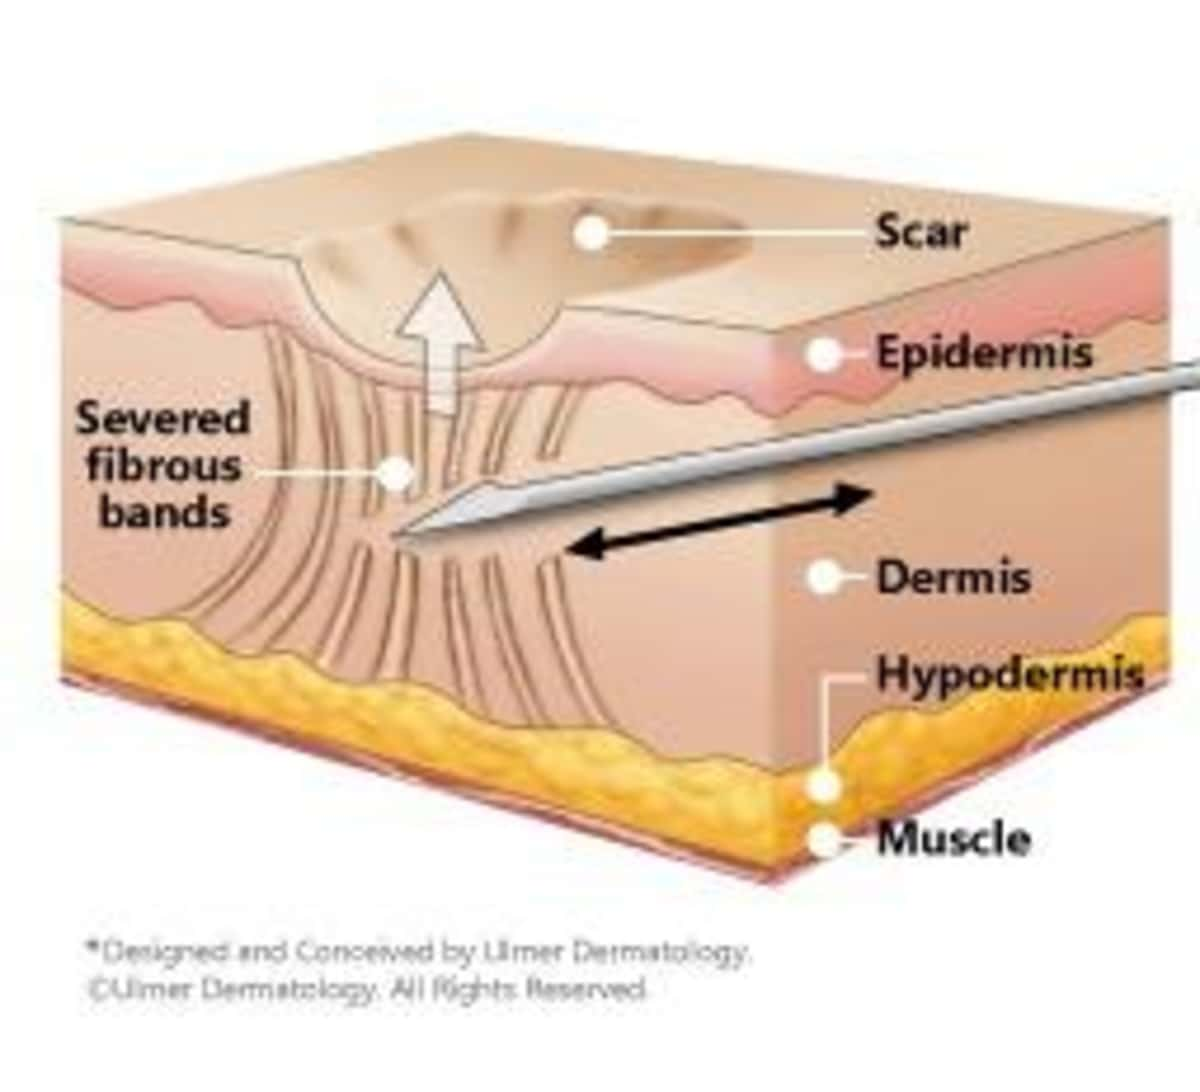 Subcision for deep acne scars